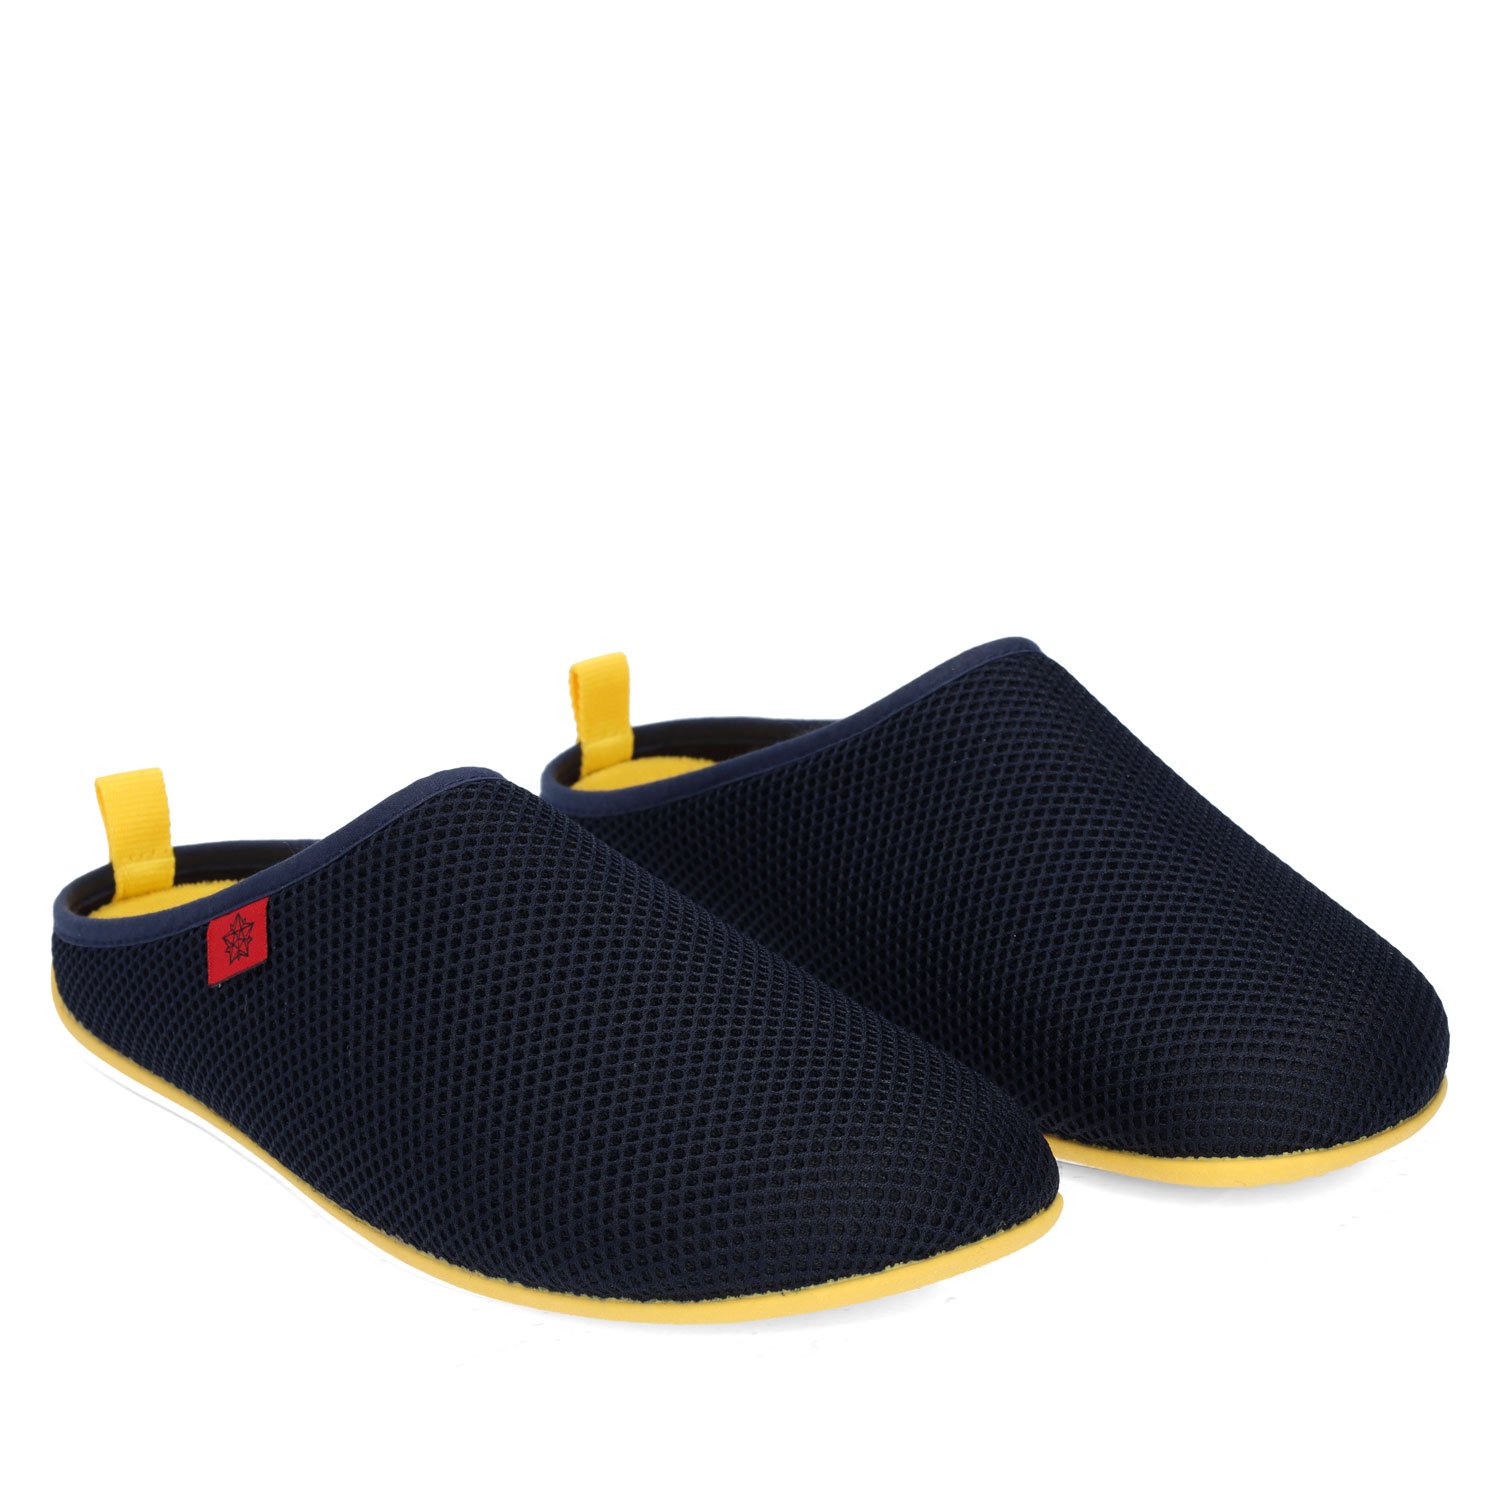 Spring/ Summer Unisex Slippers in Navy mesh with Yellow outsole